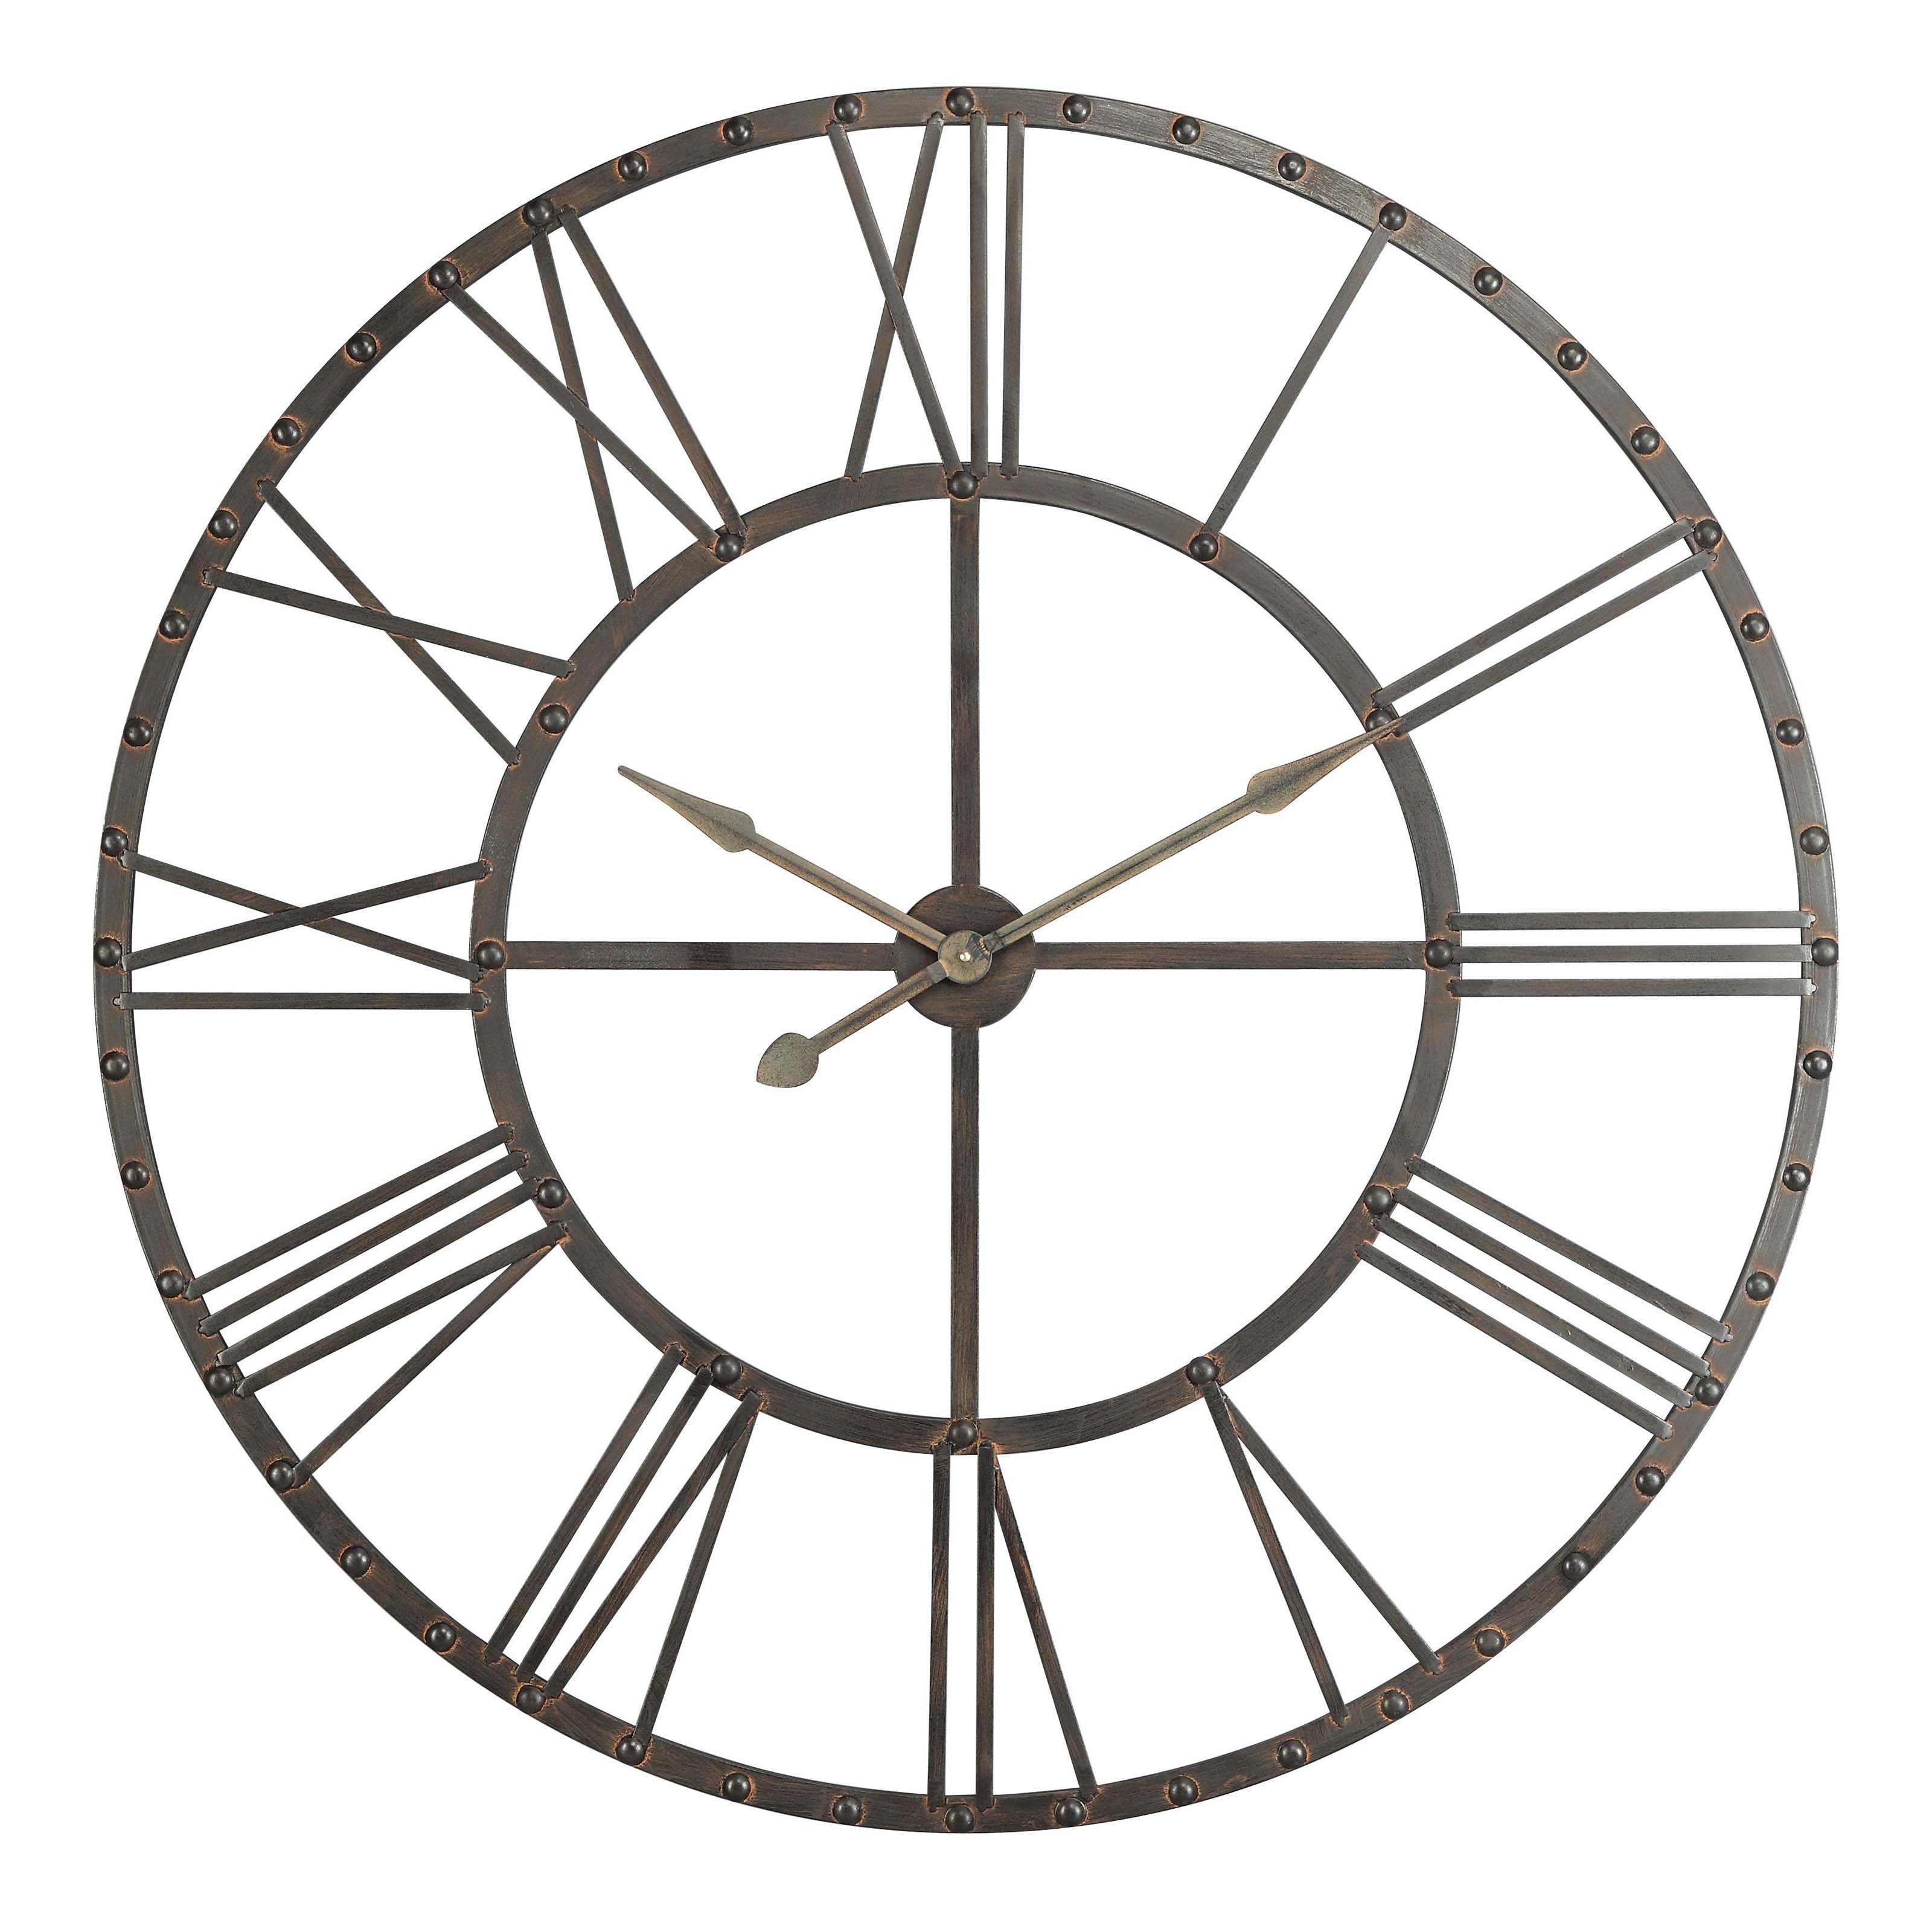 Furniture inspiring oversized wall clock for wall accessories upton oversized wall clock in black theme amipublicfo Images